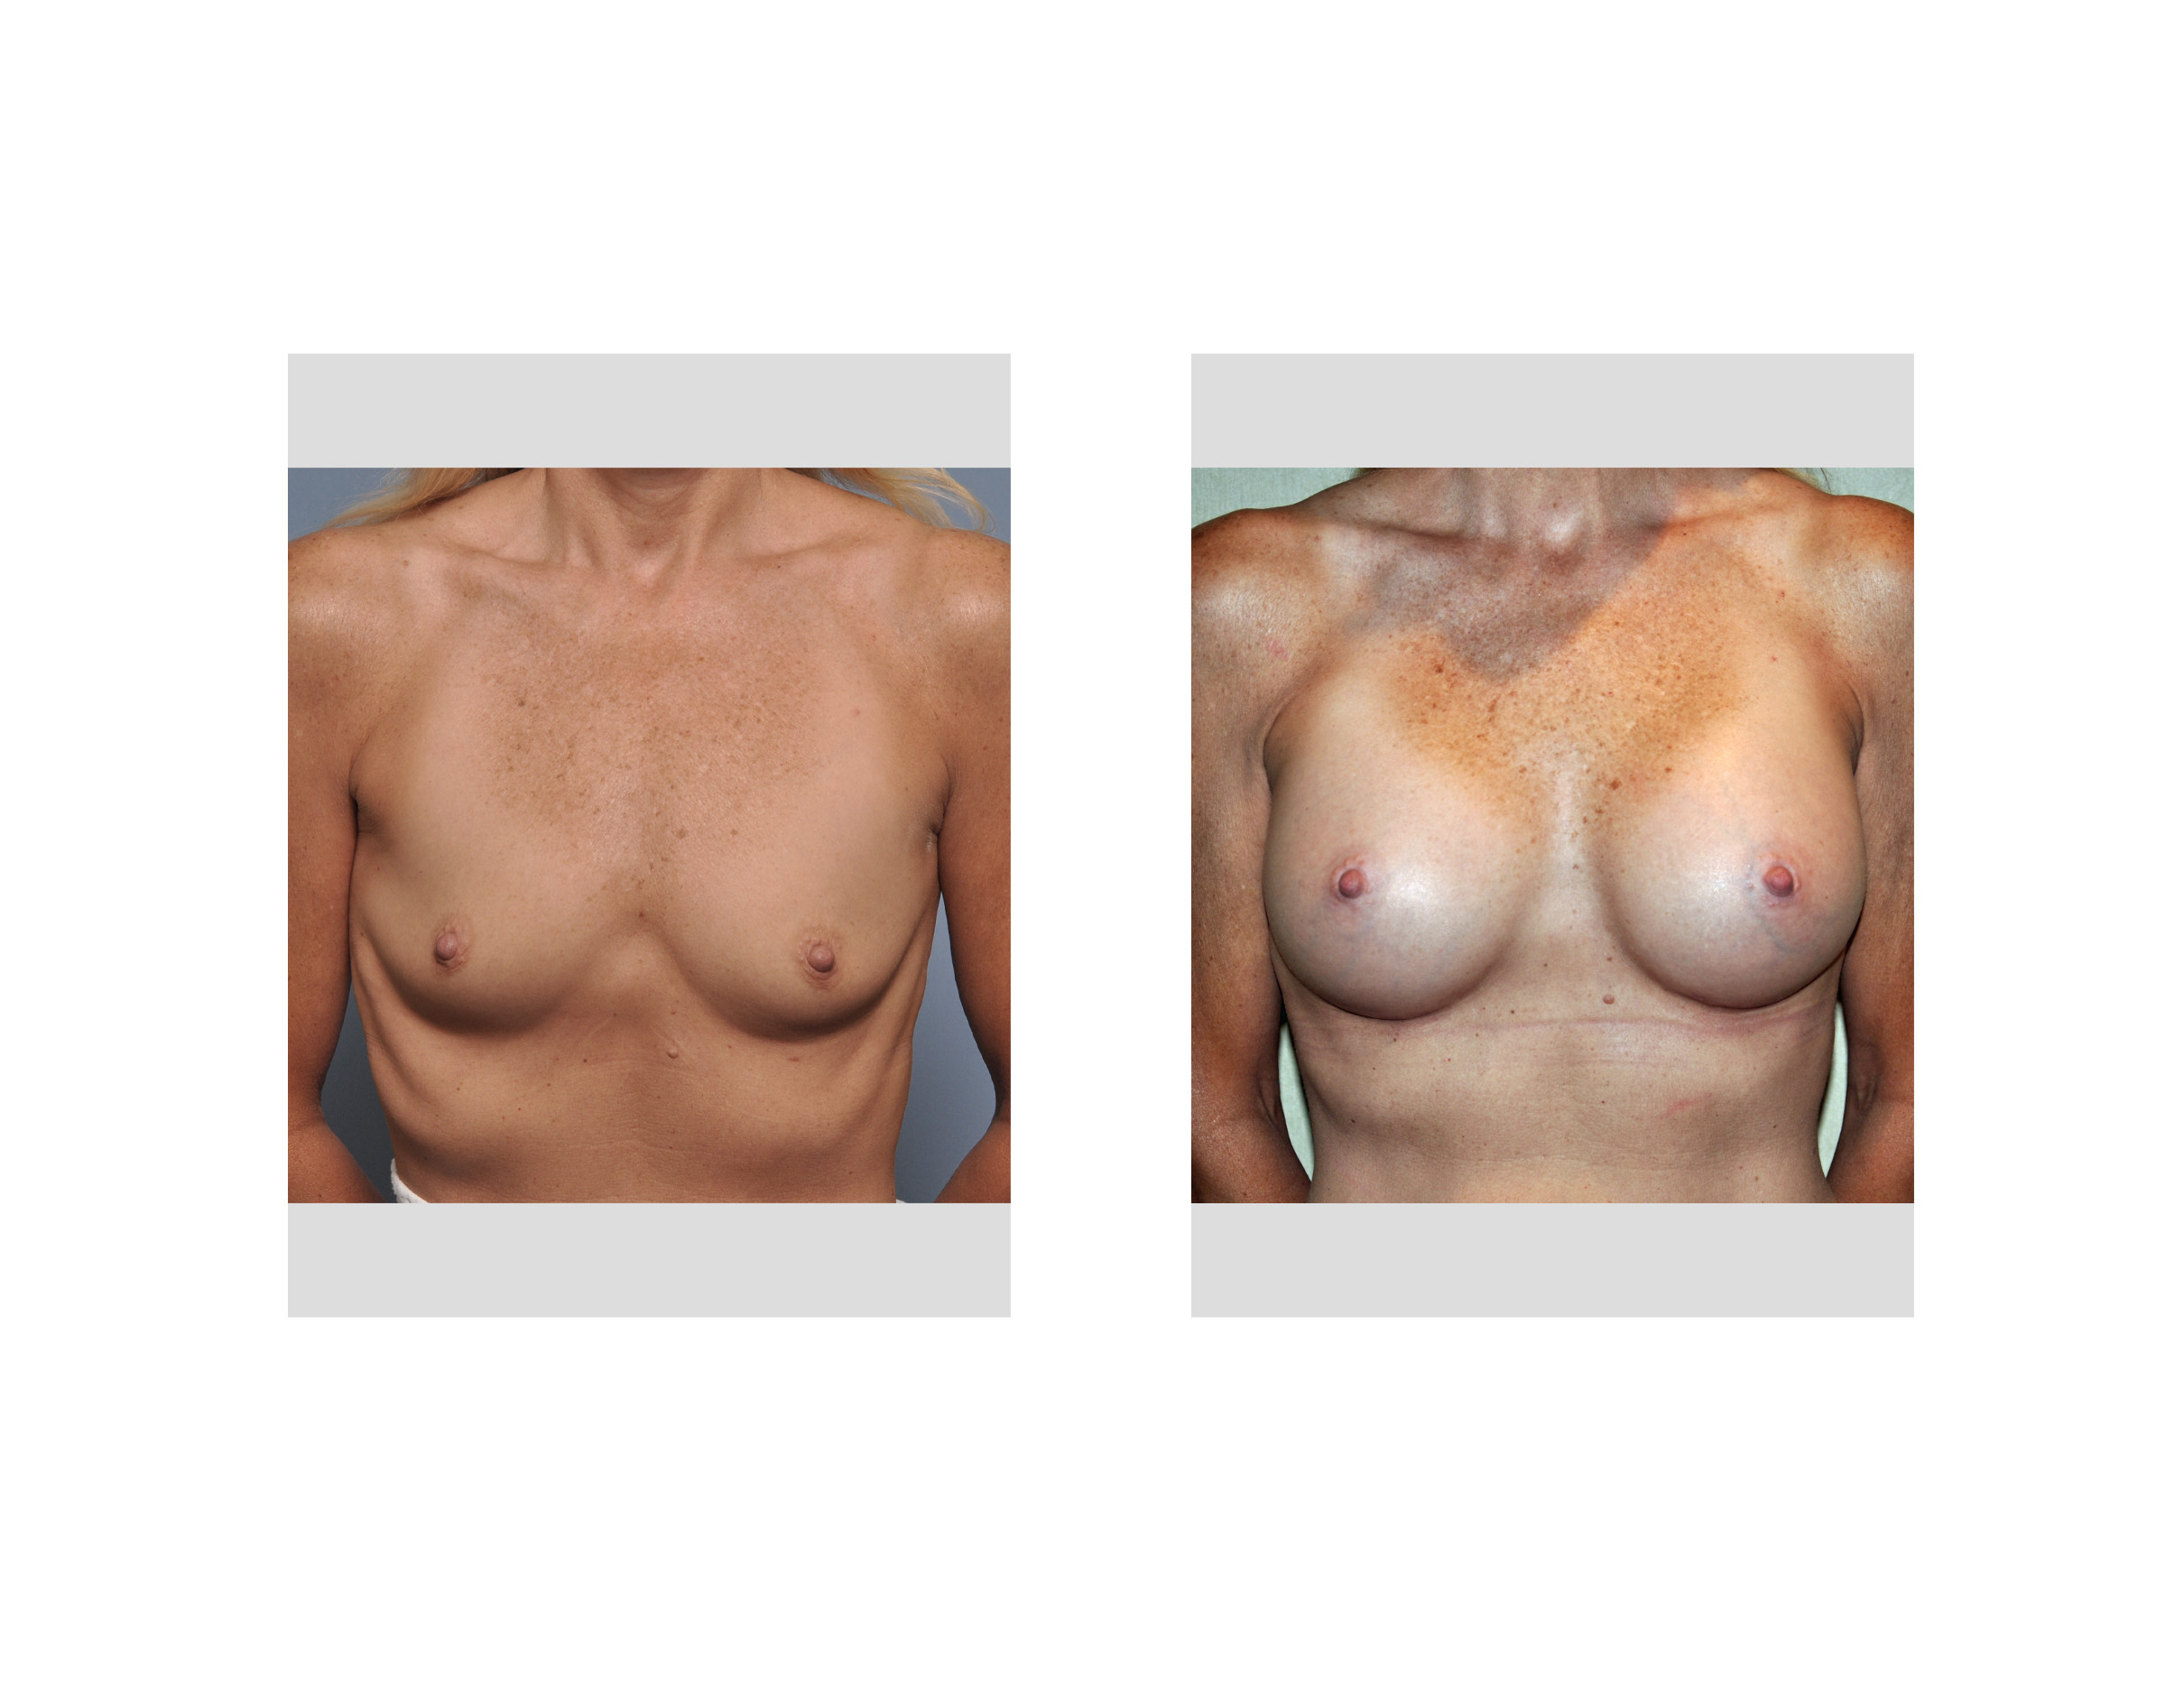 Parasternal Fat Grafting In Breast Augmentation In The Widely